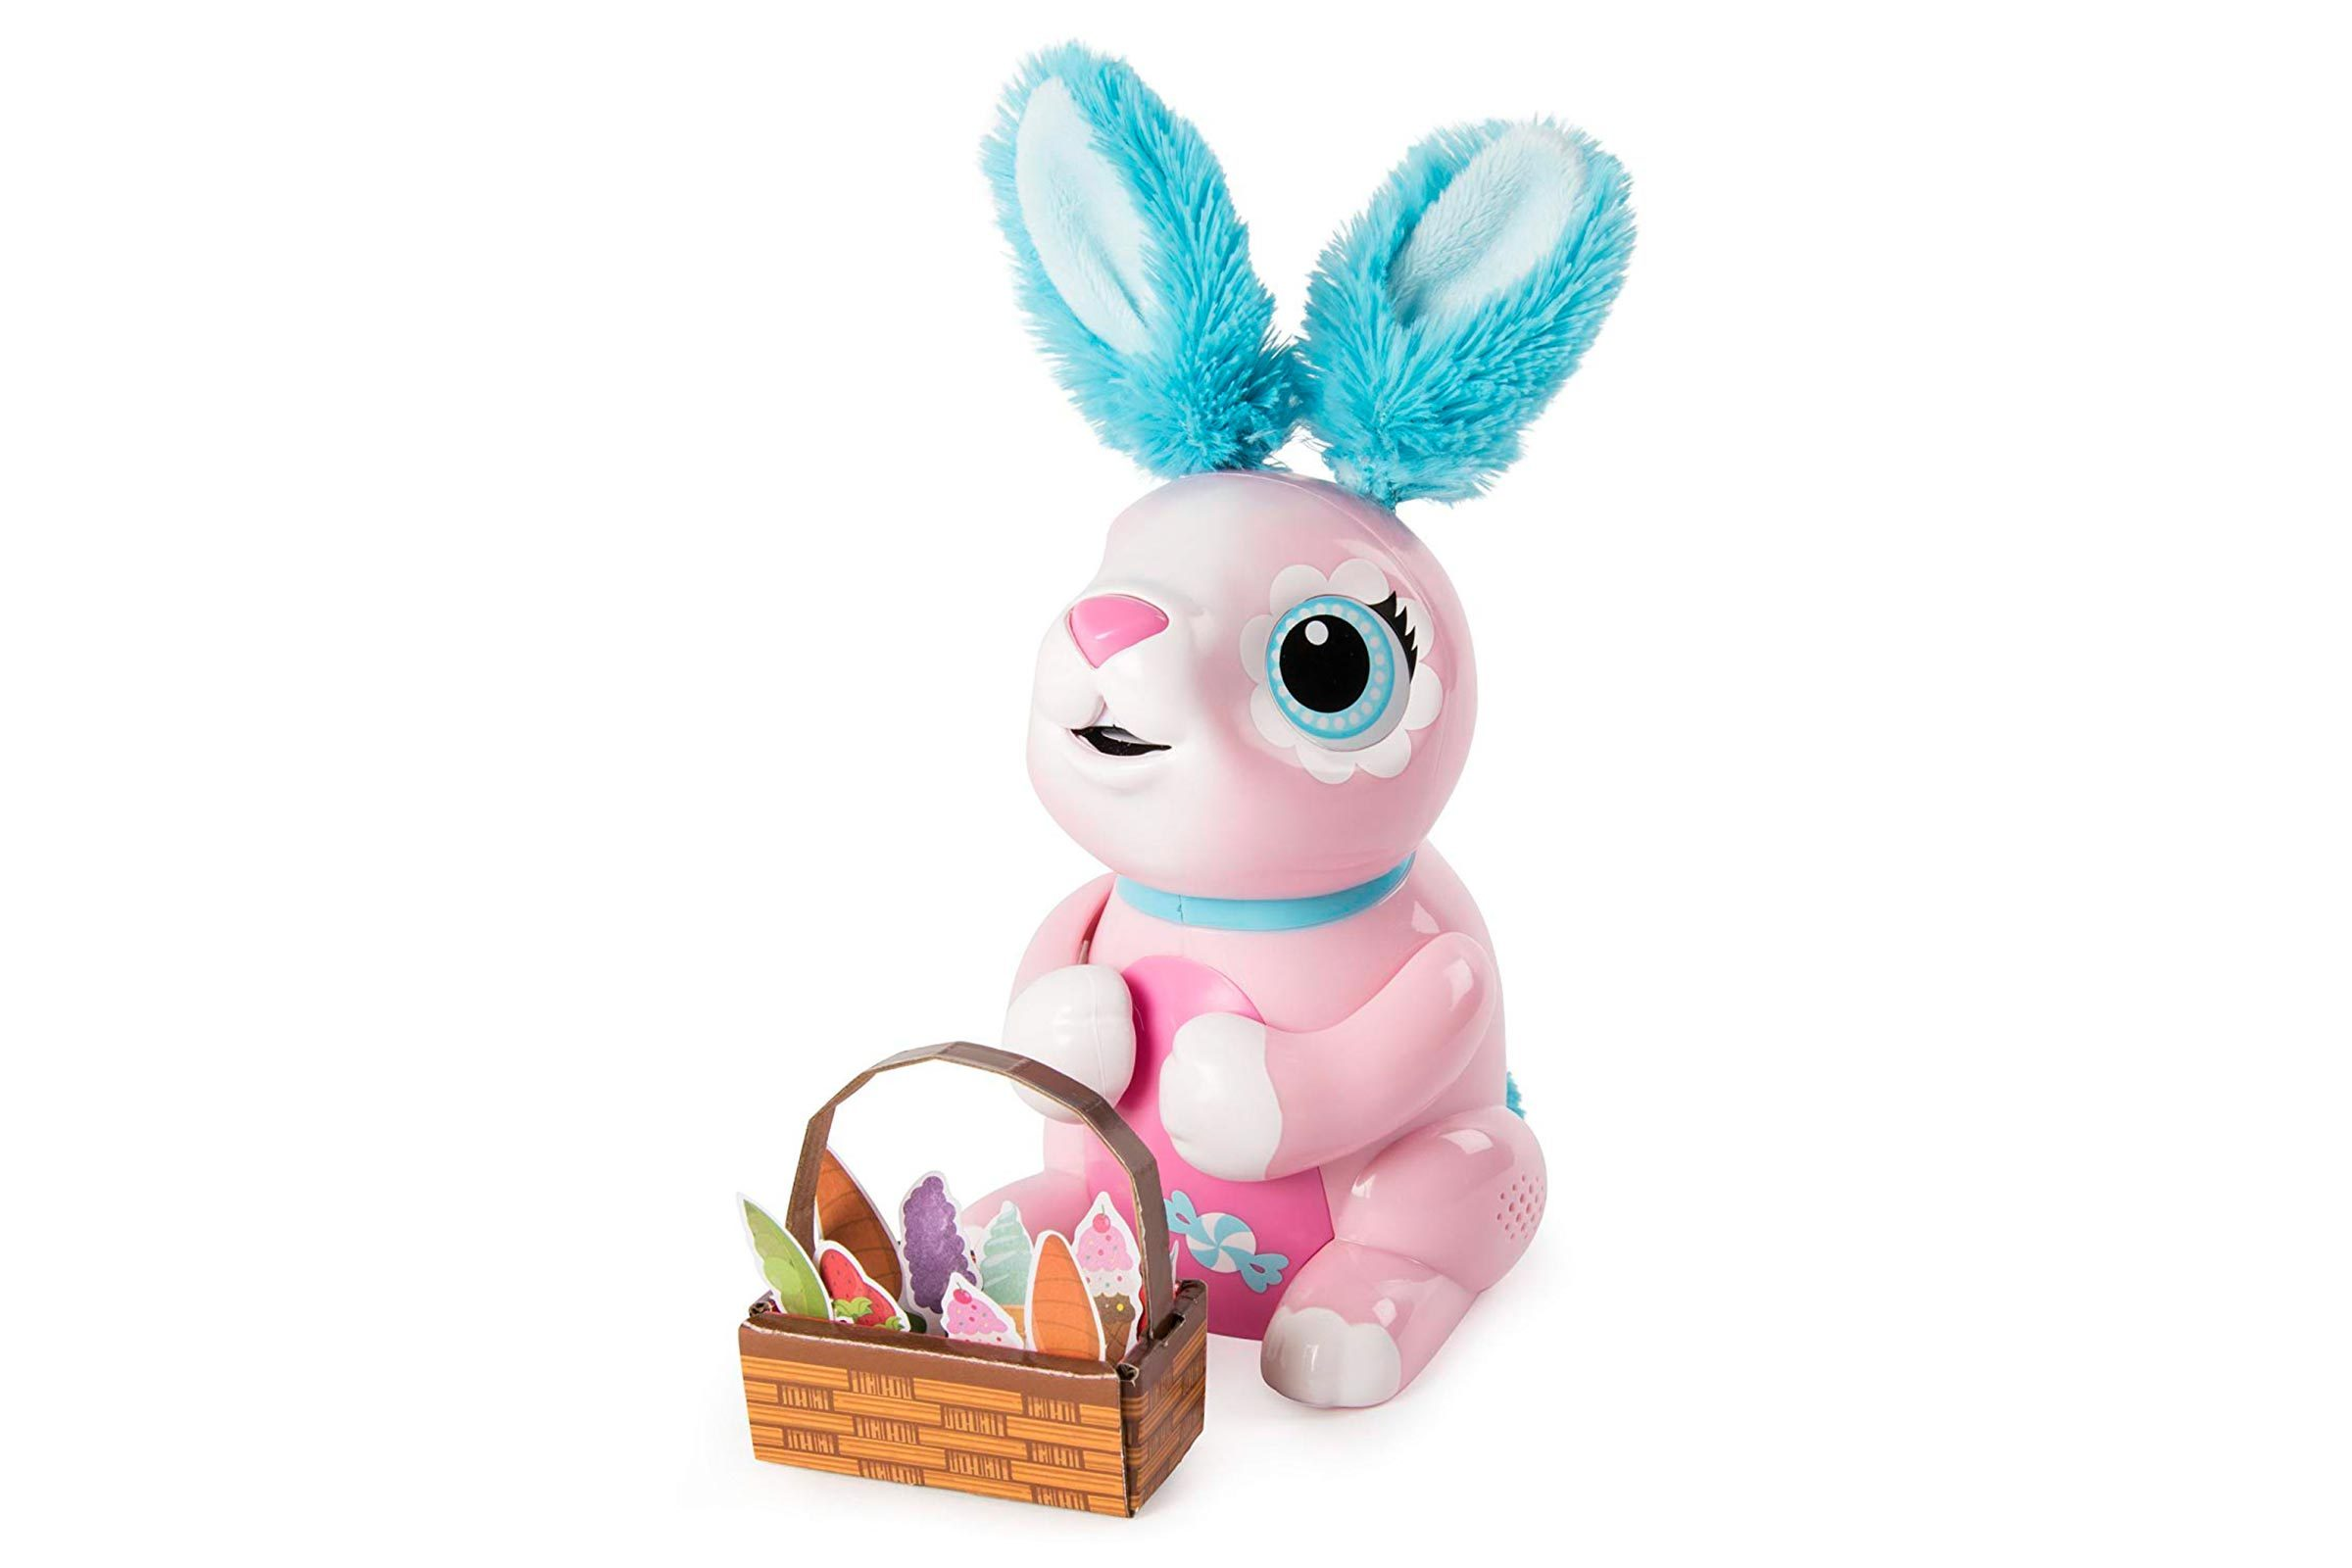 Hungry Bunnies toy